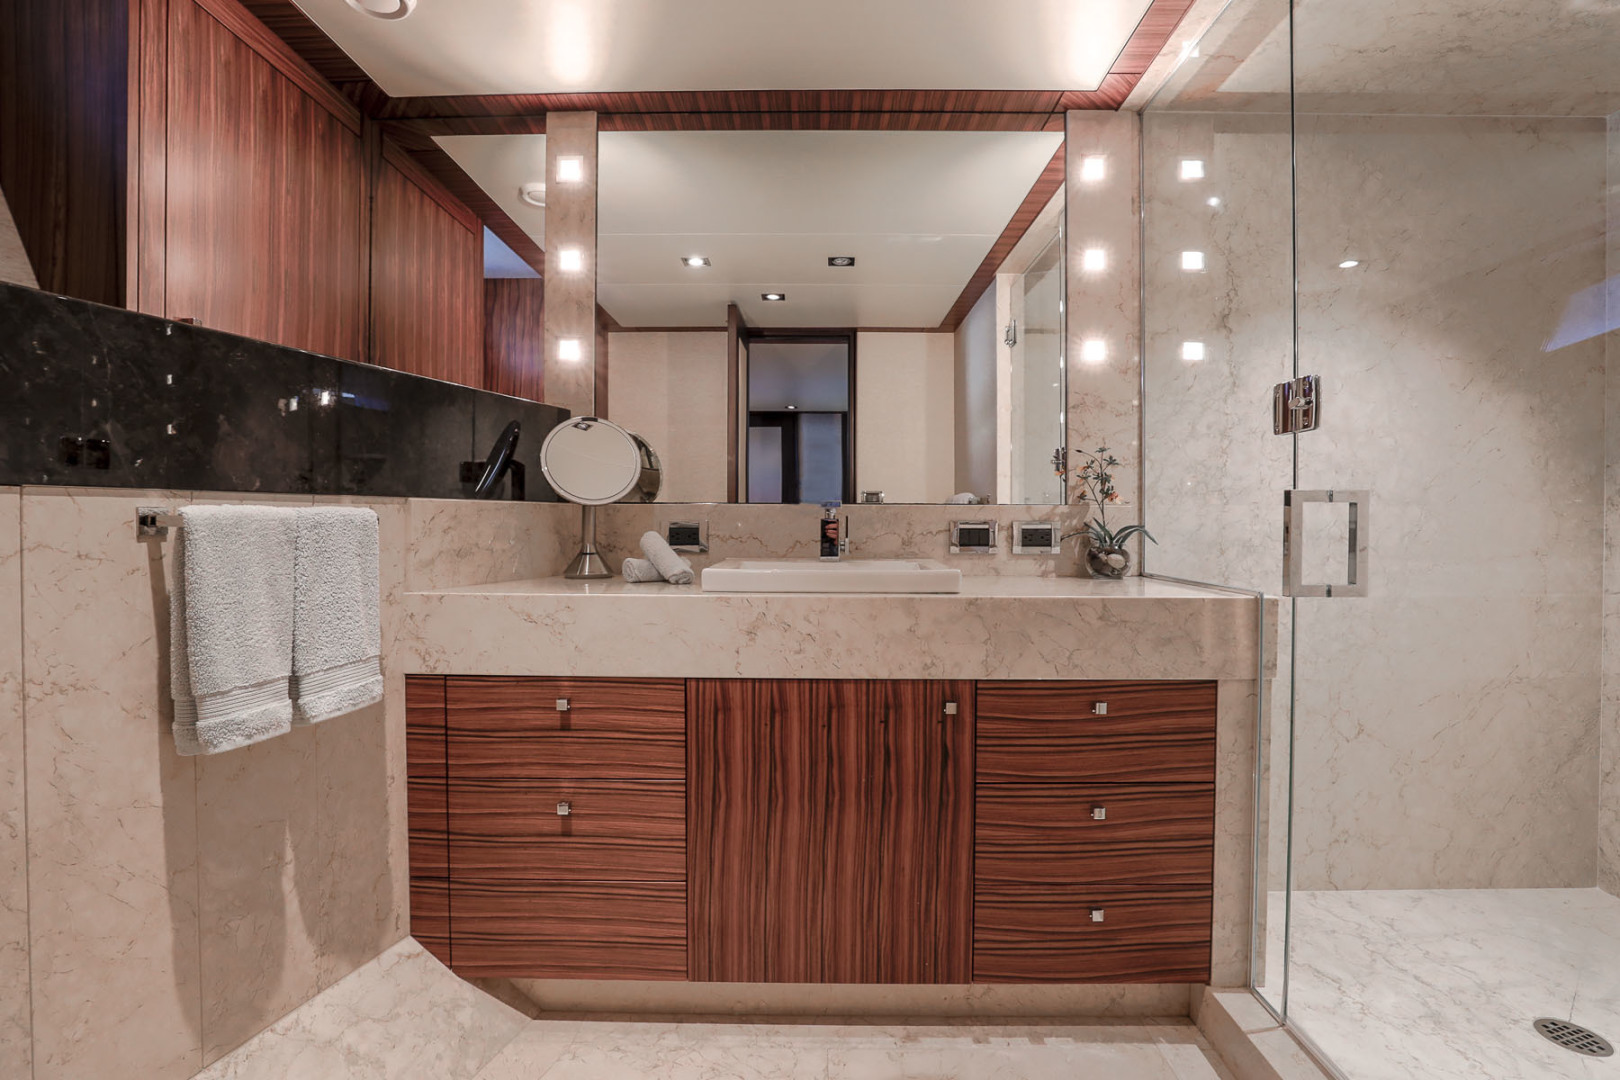 Northcoast-NC125 2011-FUGITIVE *Name Reserved* West Palm Beach-Florida-United States-Port Guest Bath-1513467 | Thumbnail